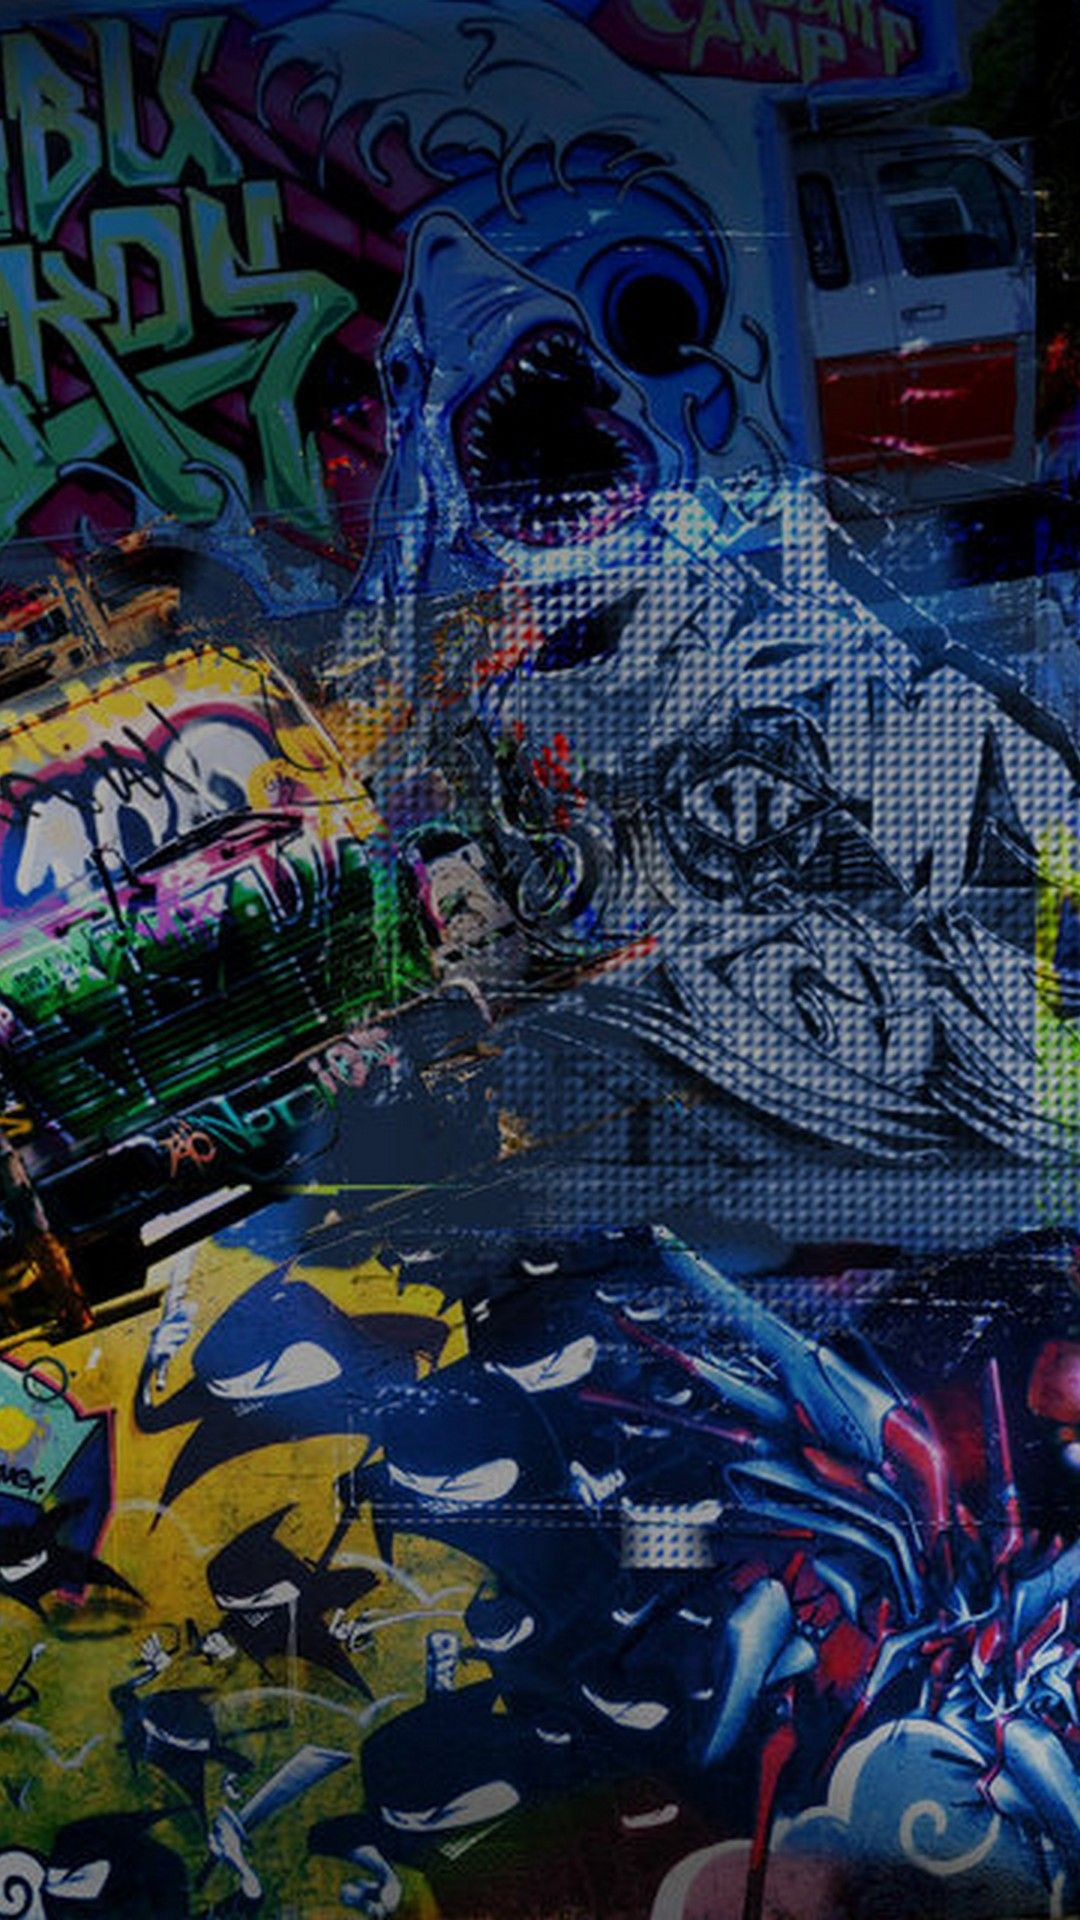 Graffiti Tag Wallpaper For Android Best Android Wallpapers Android Wallpapers Wallpaper